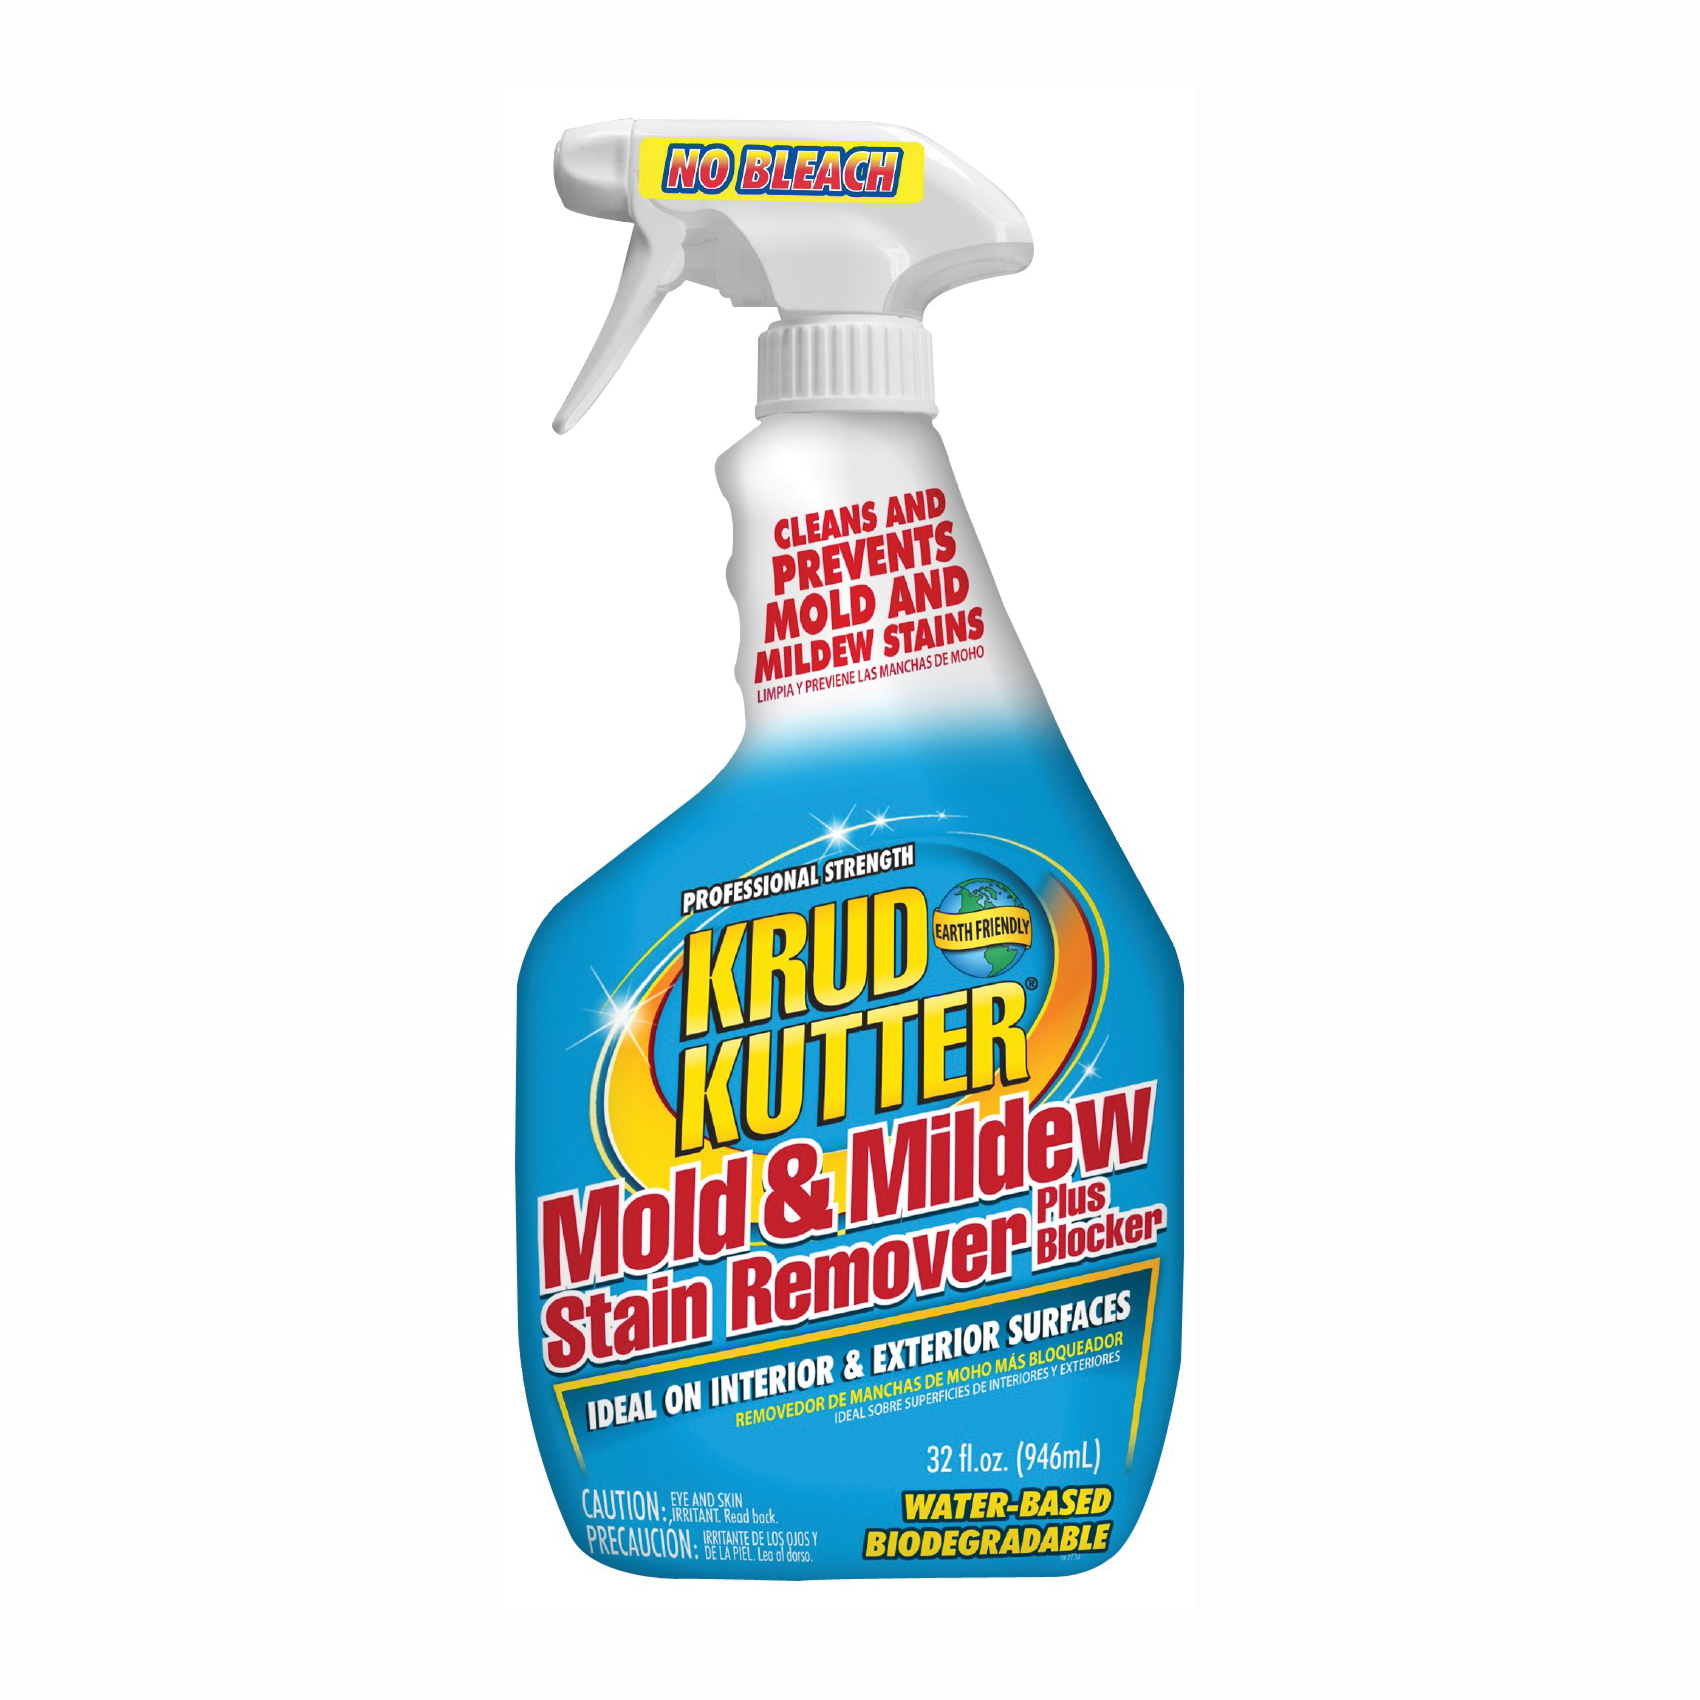 Picture of KRUD KUTTER MS324 Mold and Mildew Stain Remover Plus Blocker, 32 oz Package, Bottle, Liquid, Floral, Light Yellow